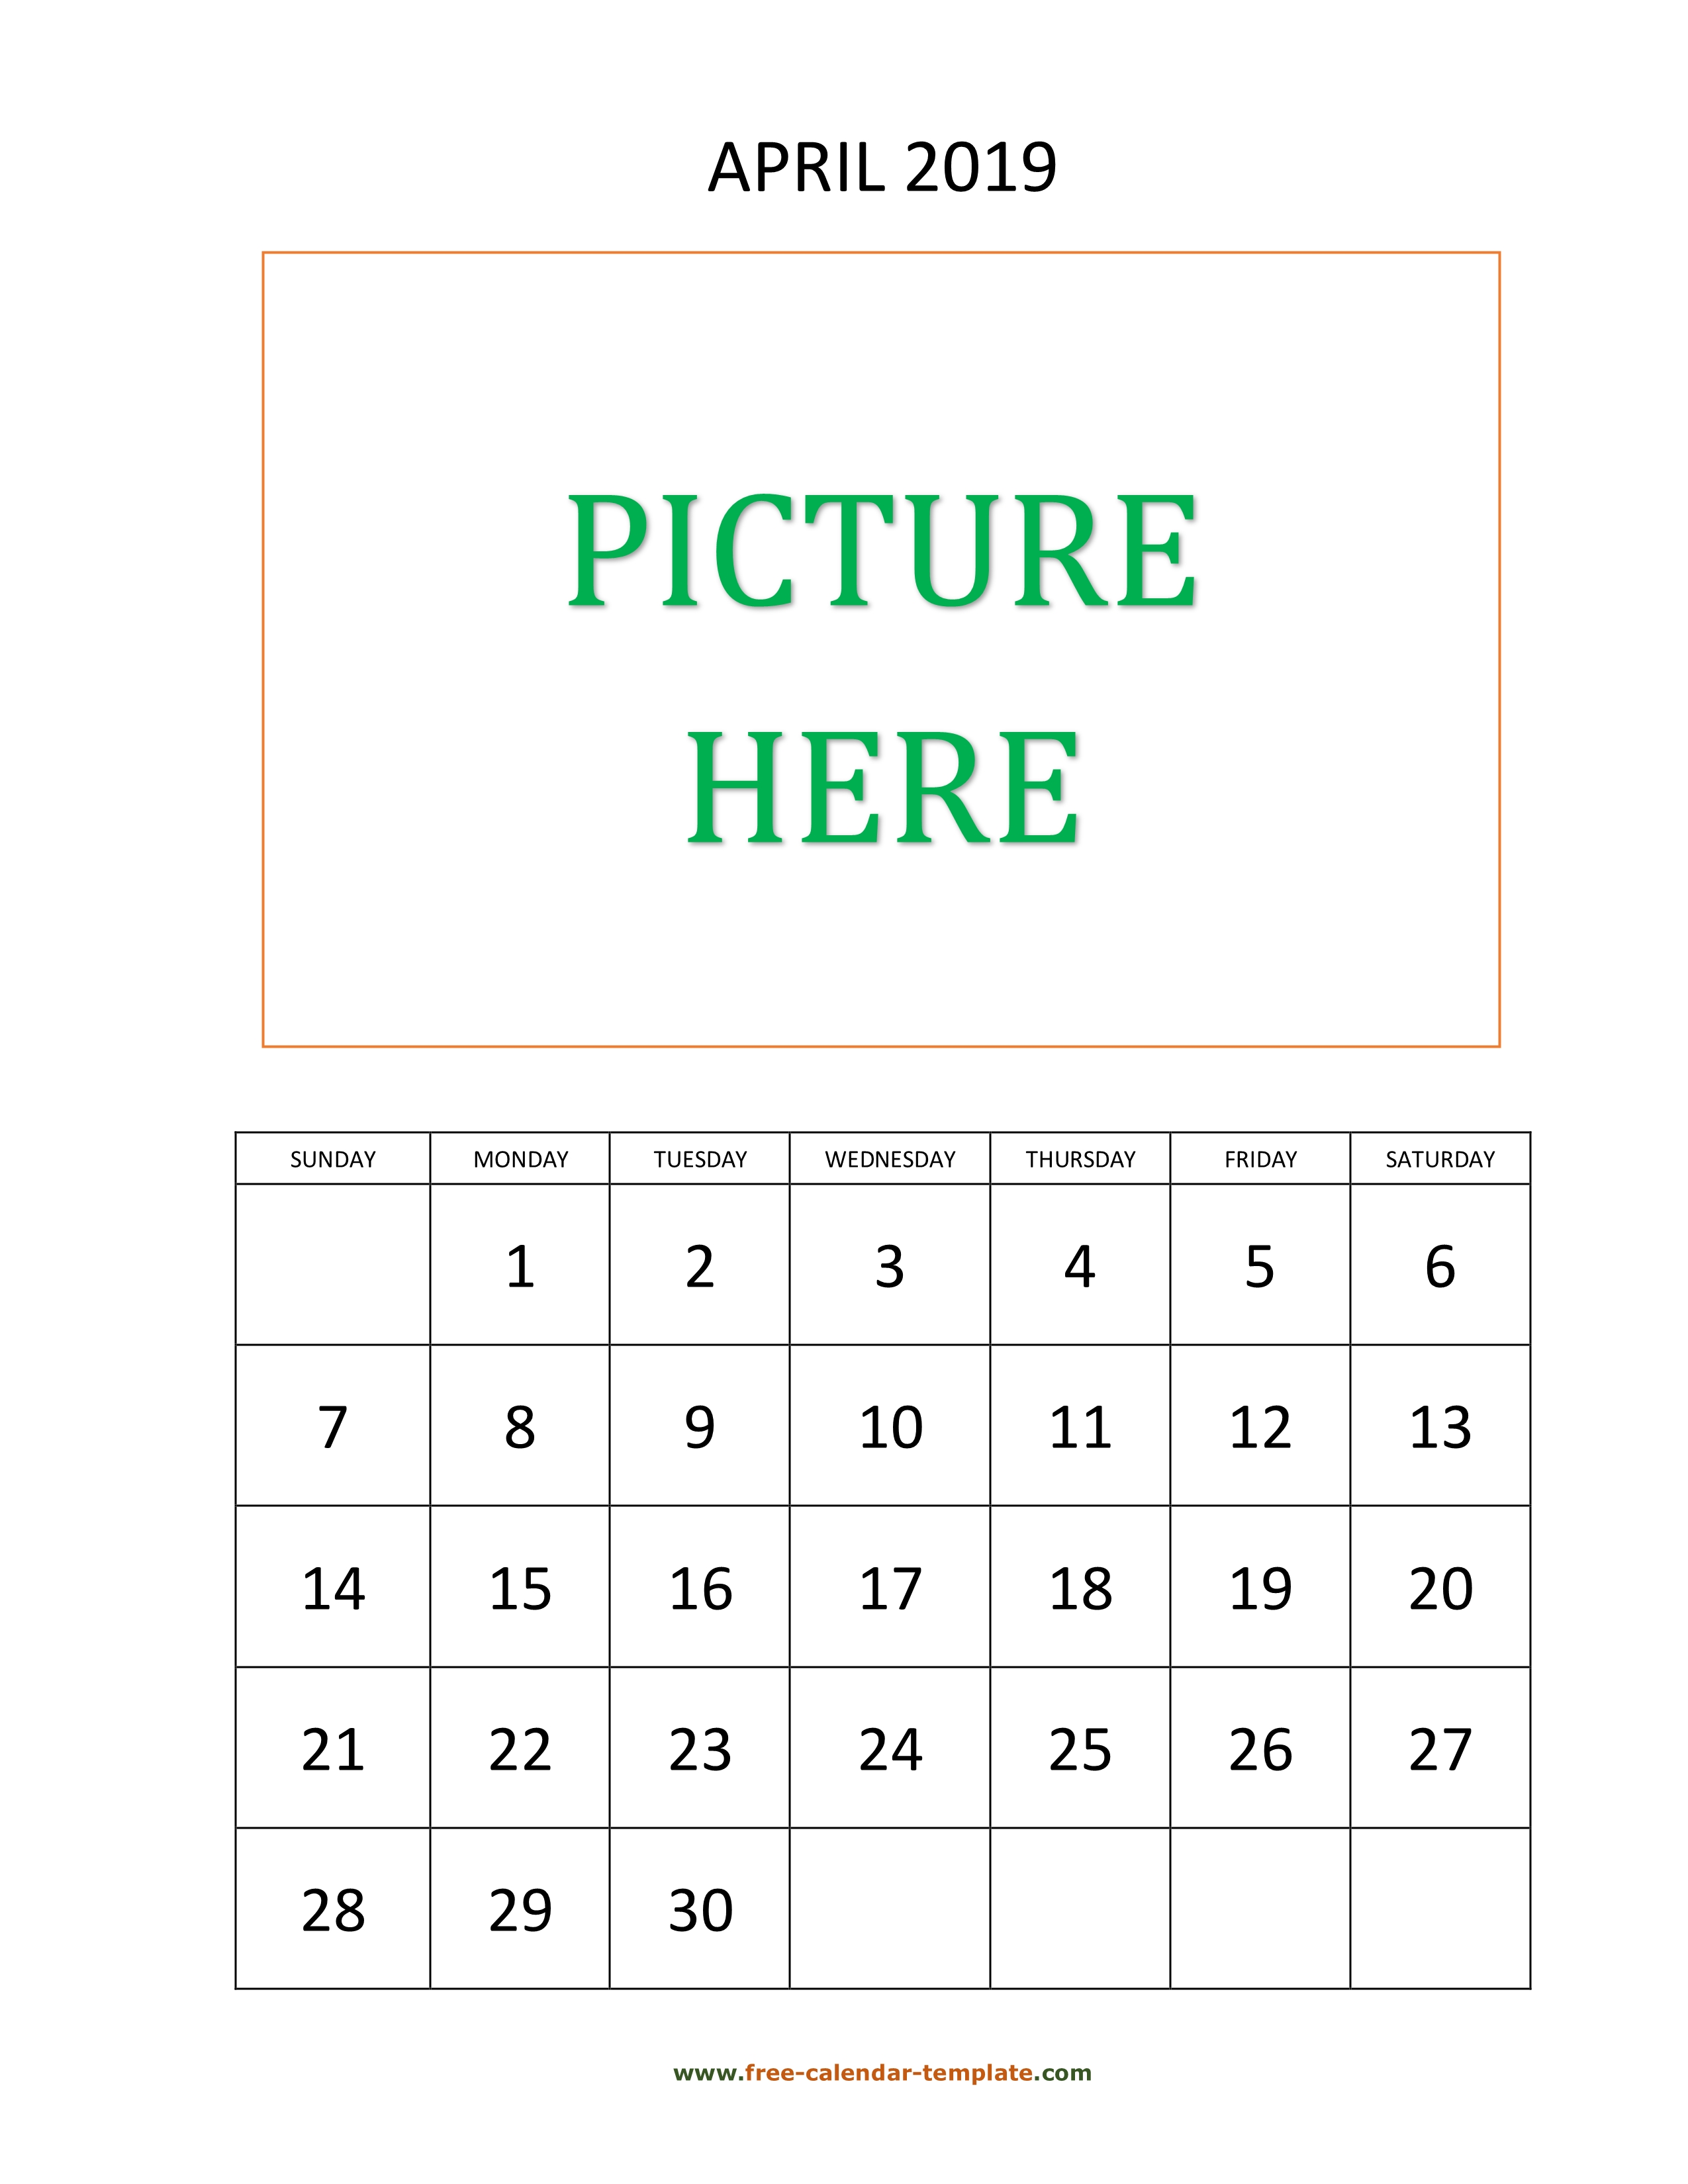 April Printable 2019 Calendar, space for add picture